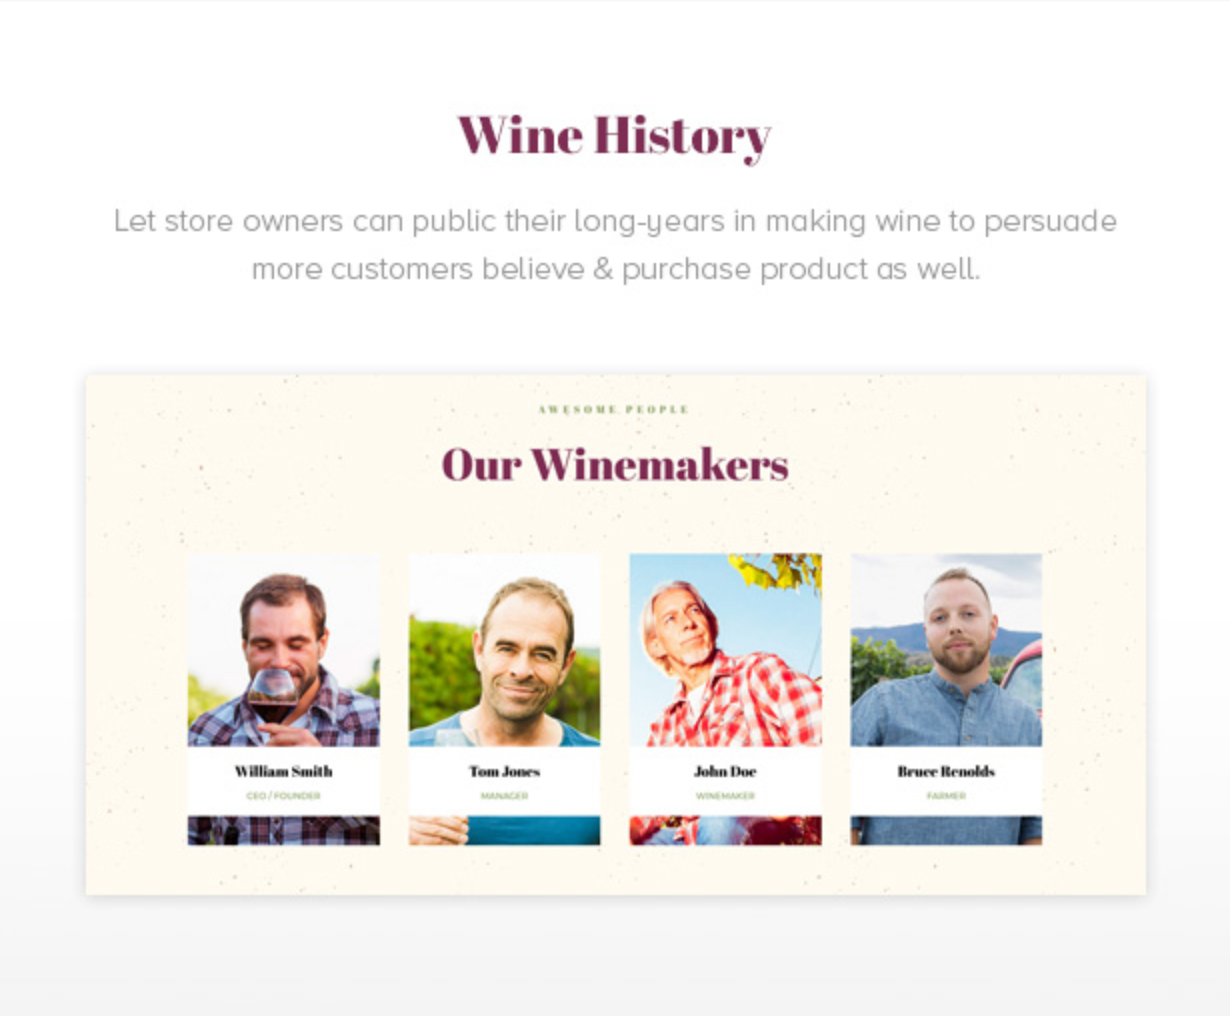 Royanwine Wine History for Vinyard, Winery, Wine Makers, Dairy Farm